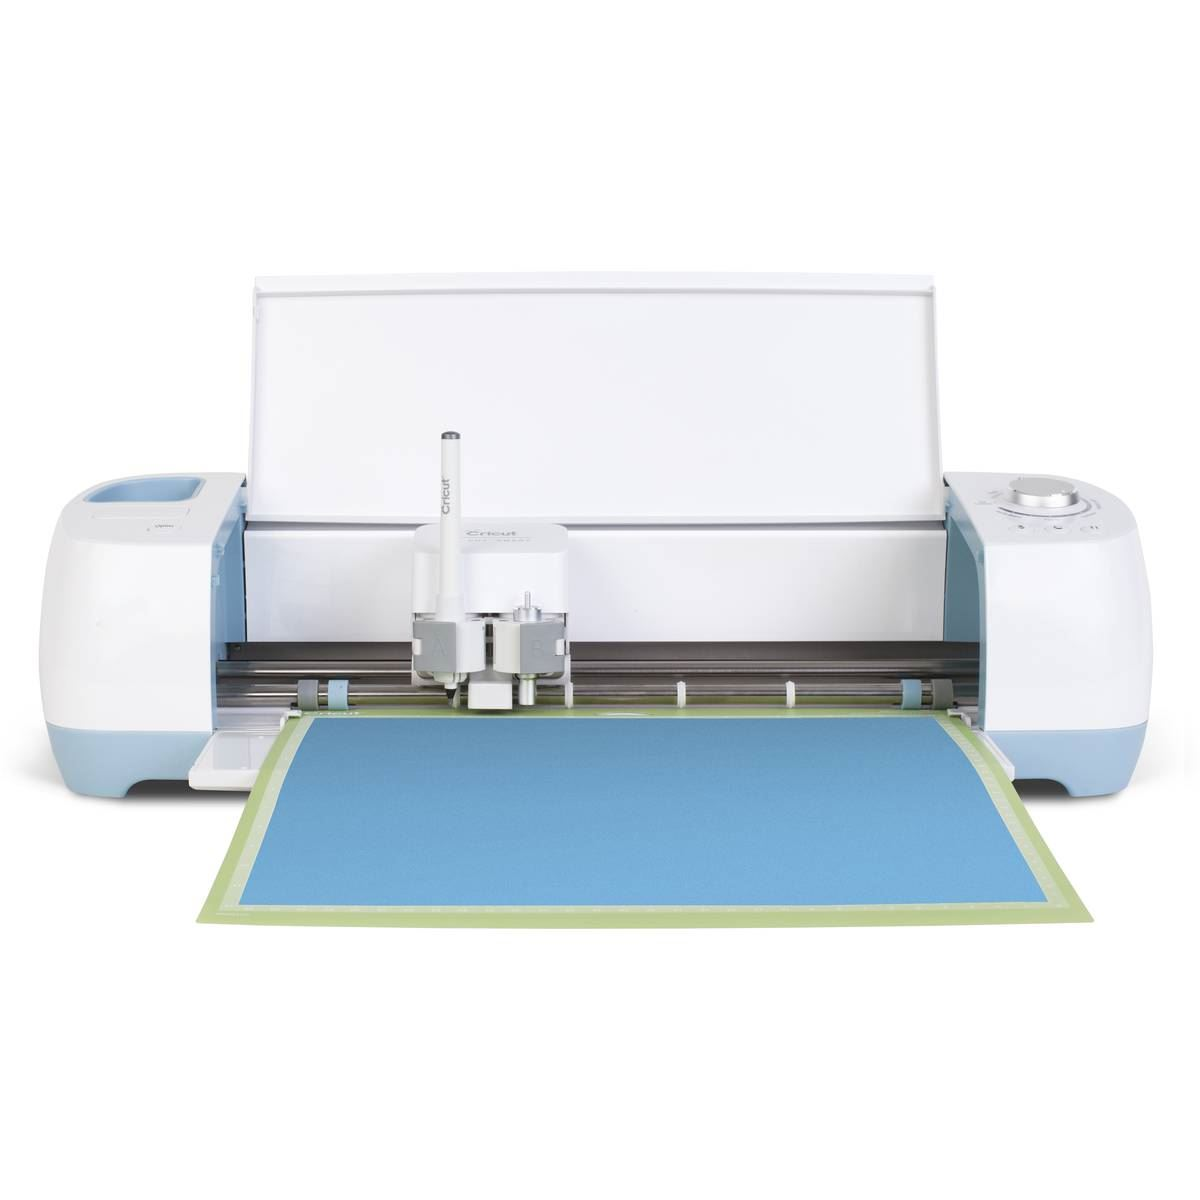 Cricut explore air die cutting machine cutter papercraft for Craft die cutting machine